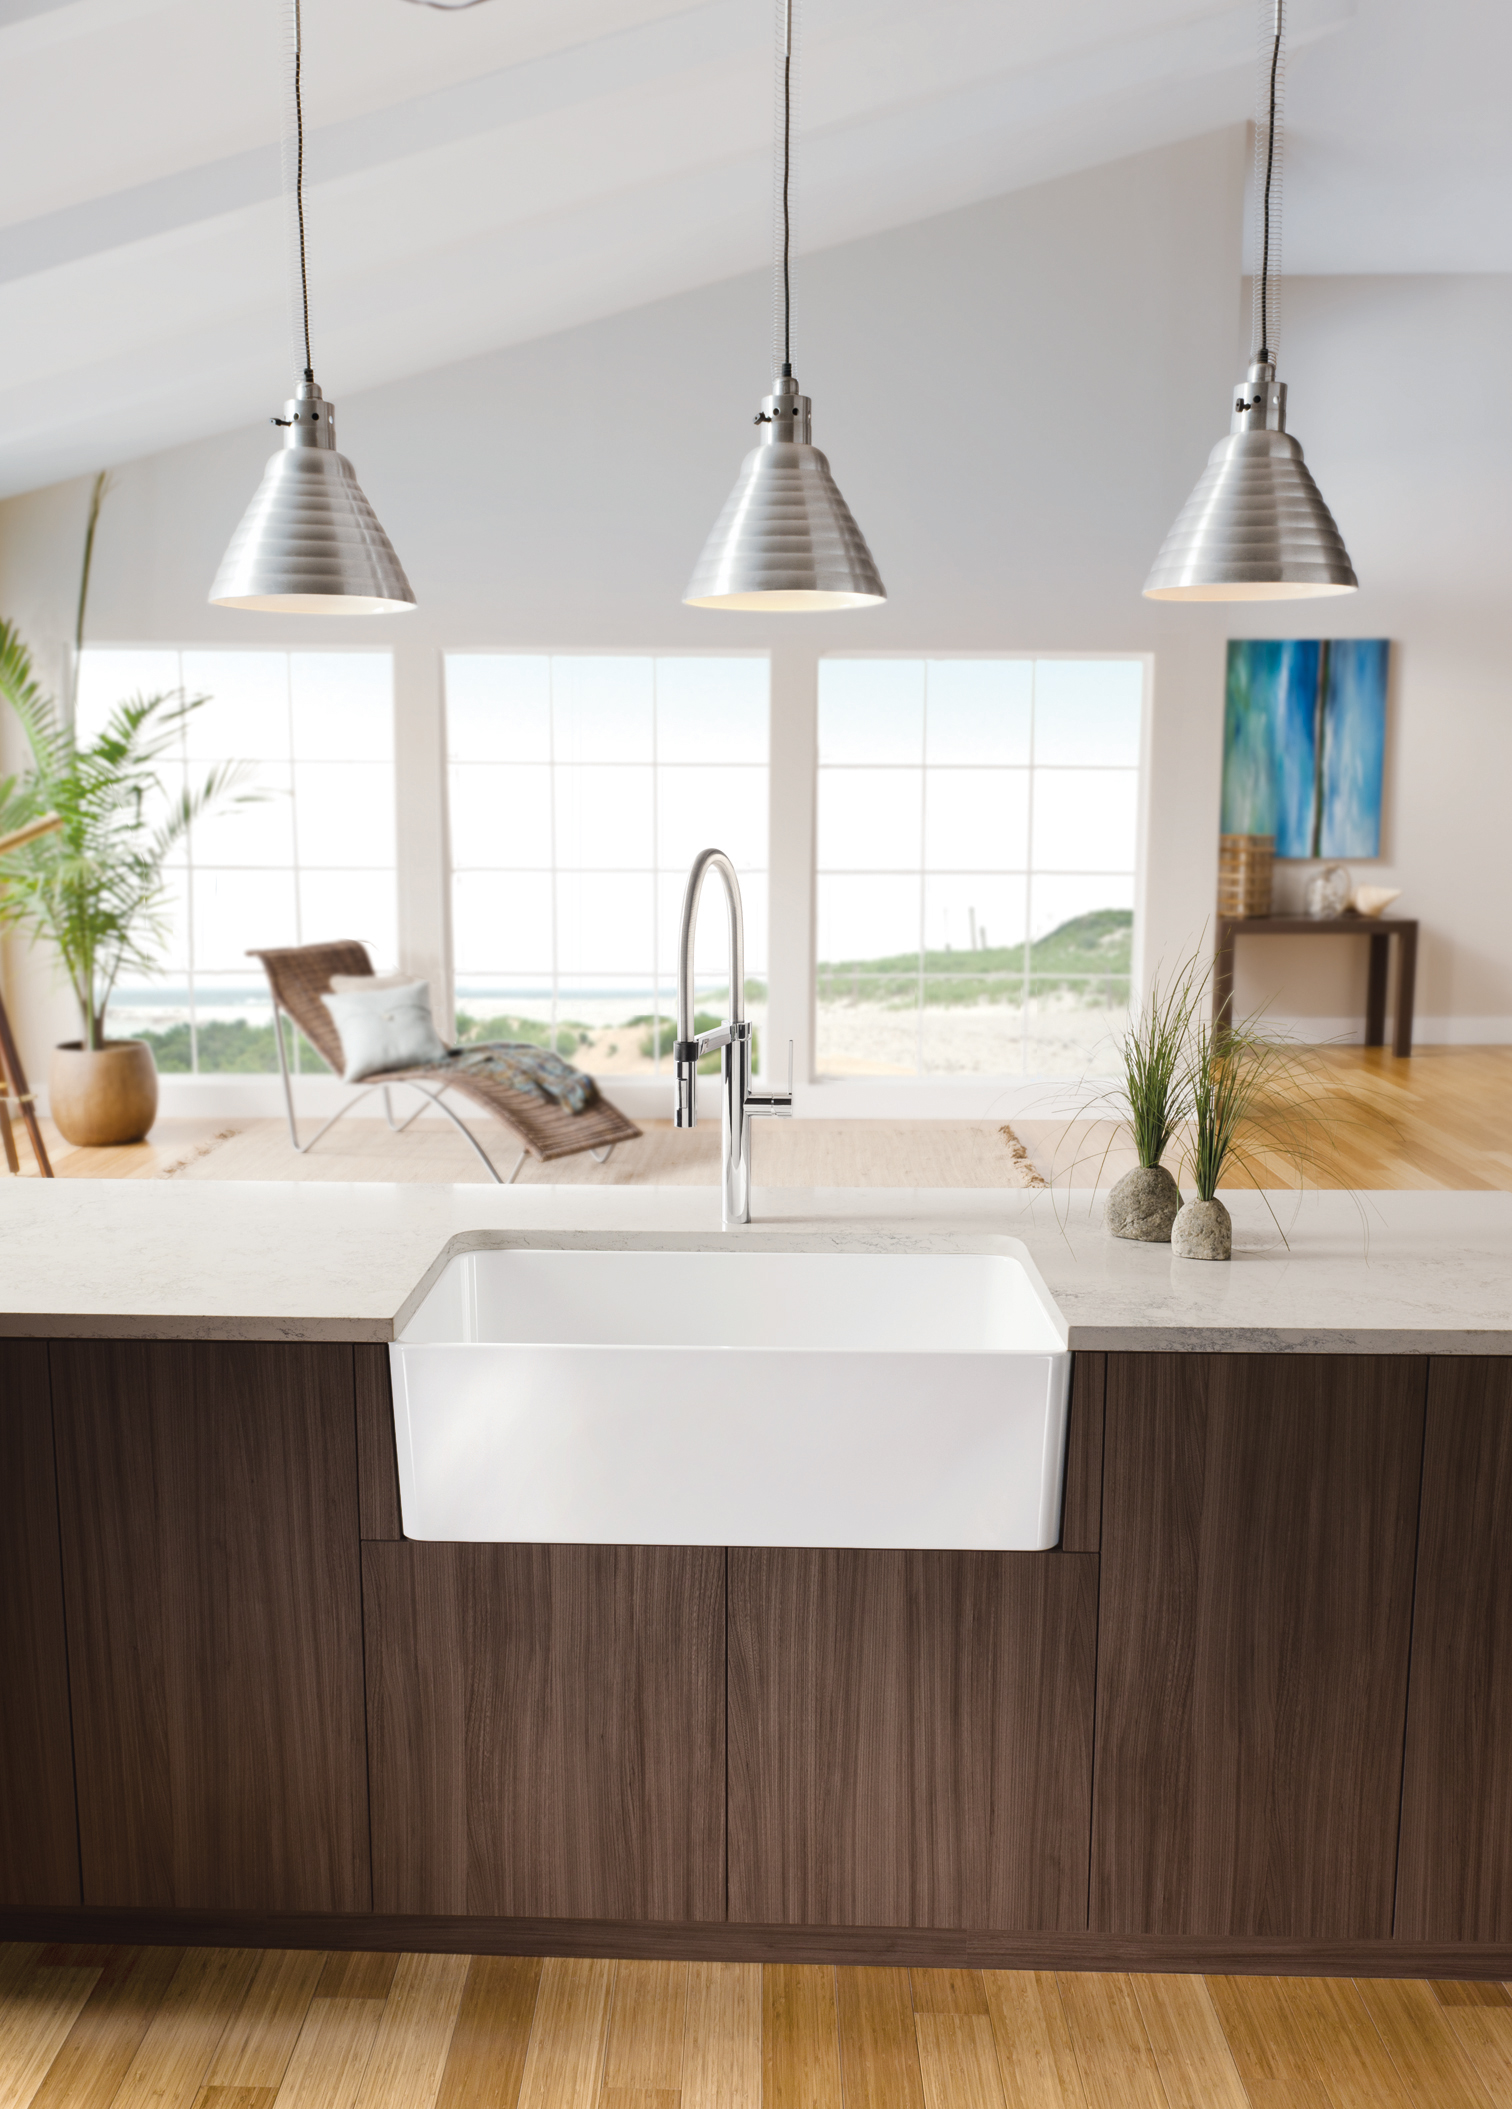 rectangle white apron sink on wooden kitchen island with white countertop plus faucet plus chandelier for kitchen decor ideas